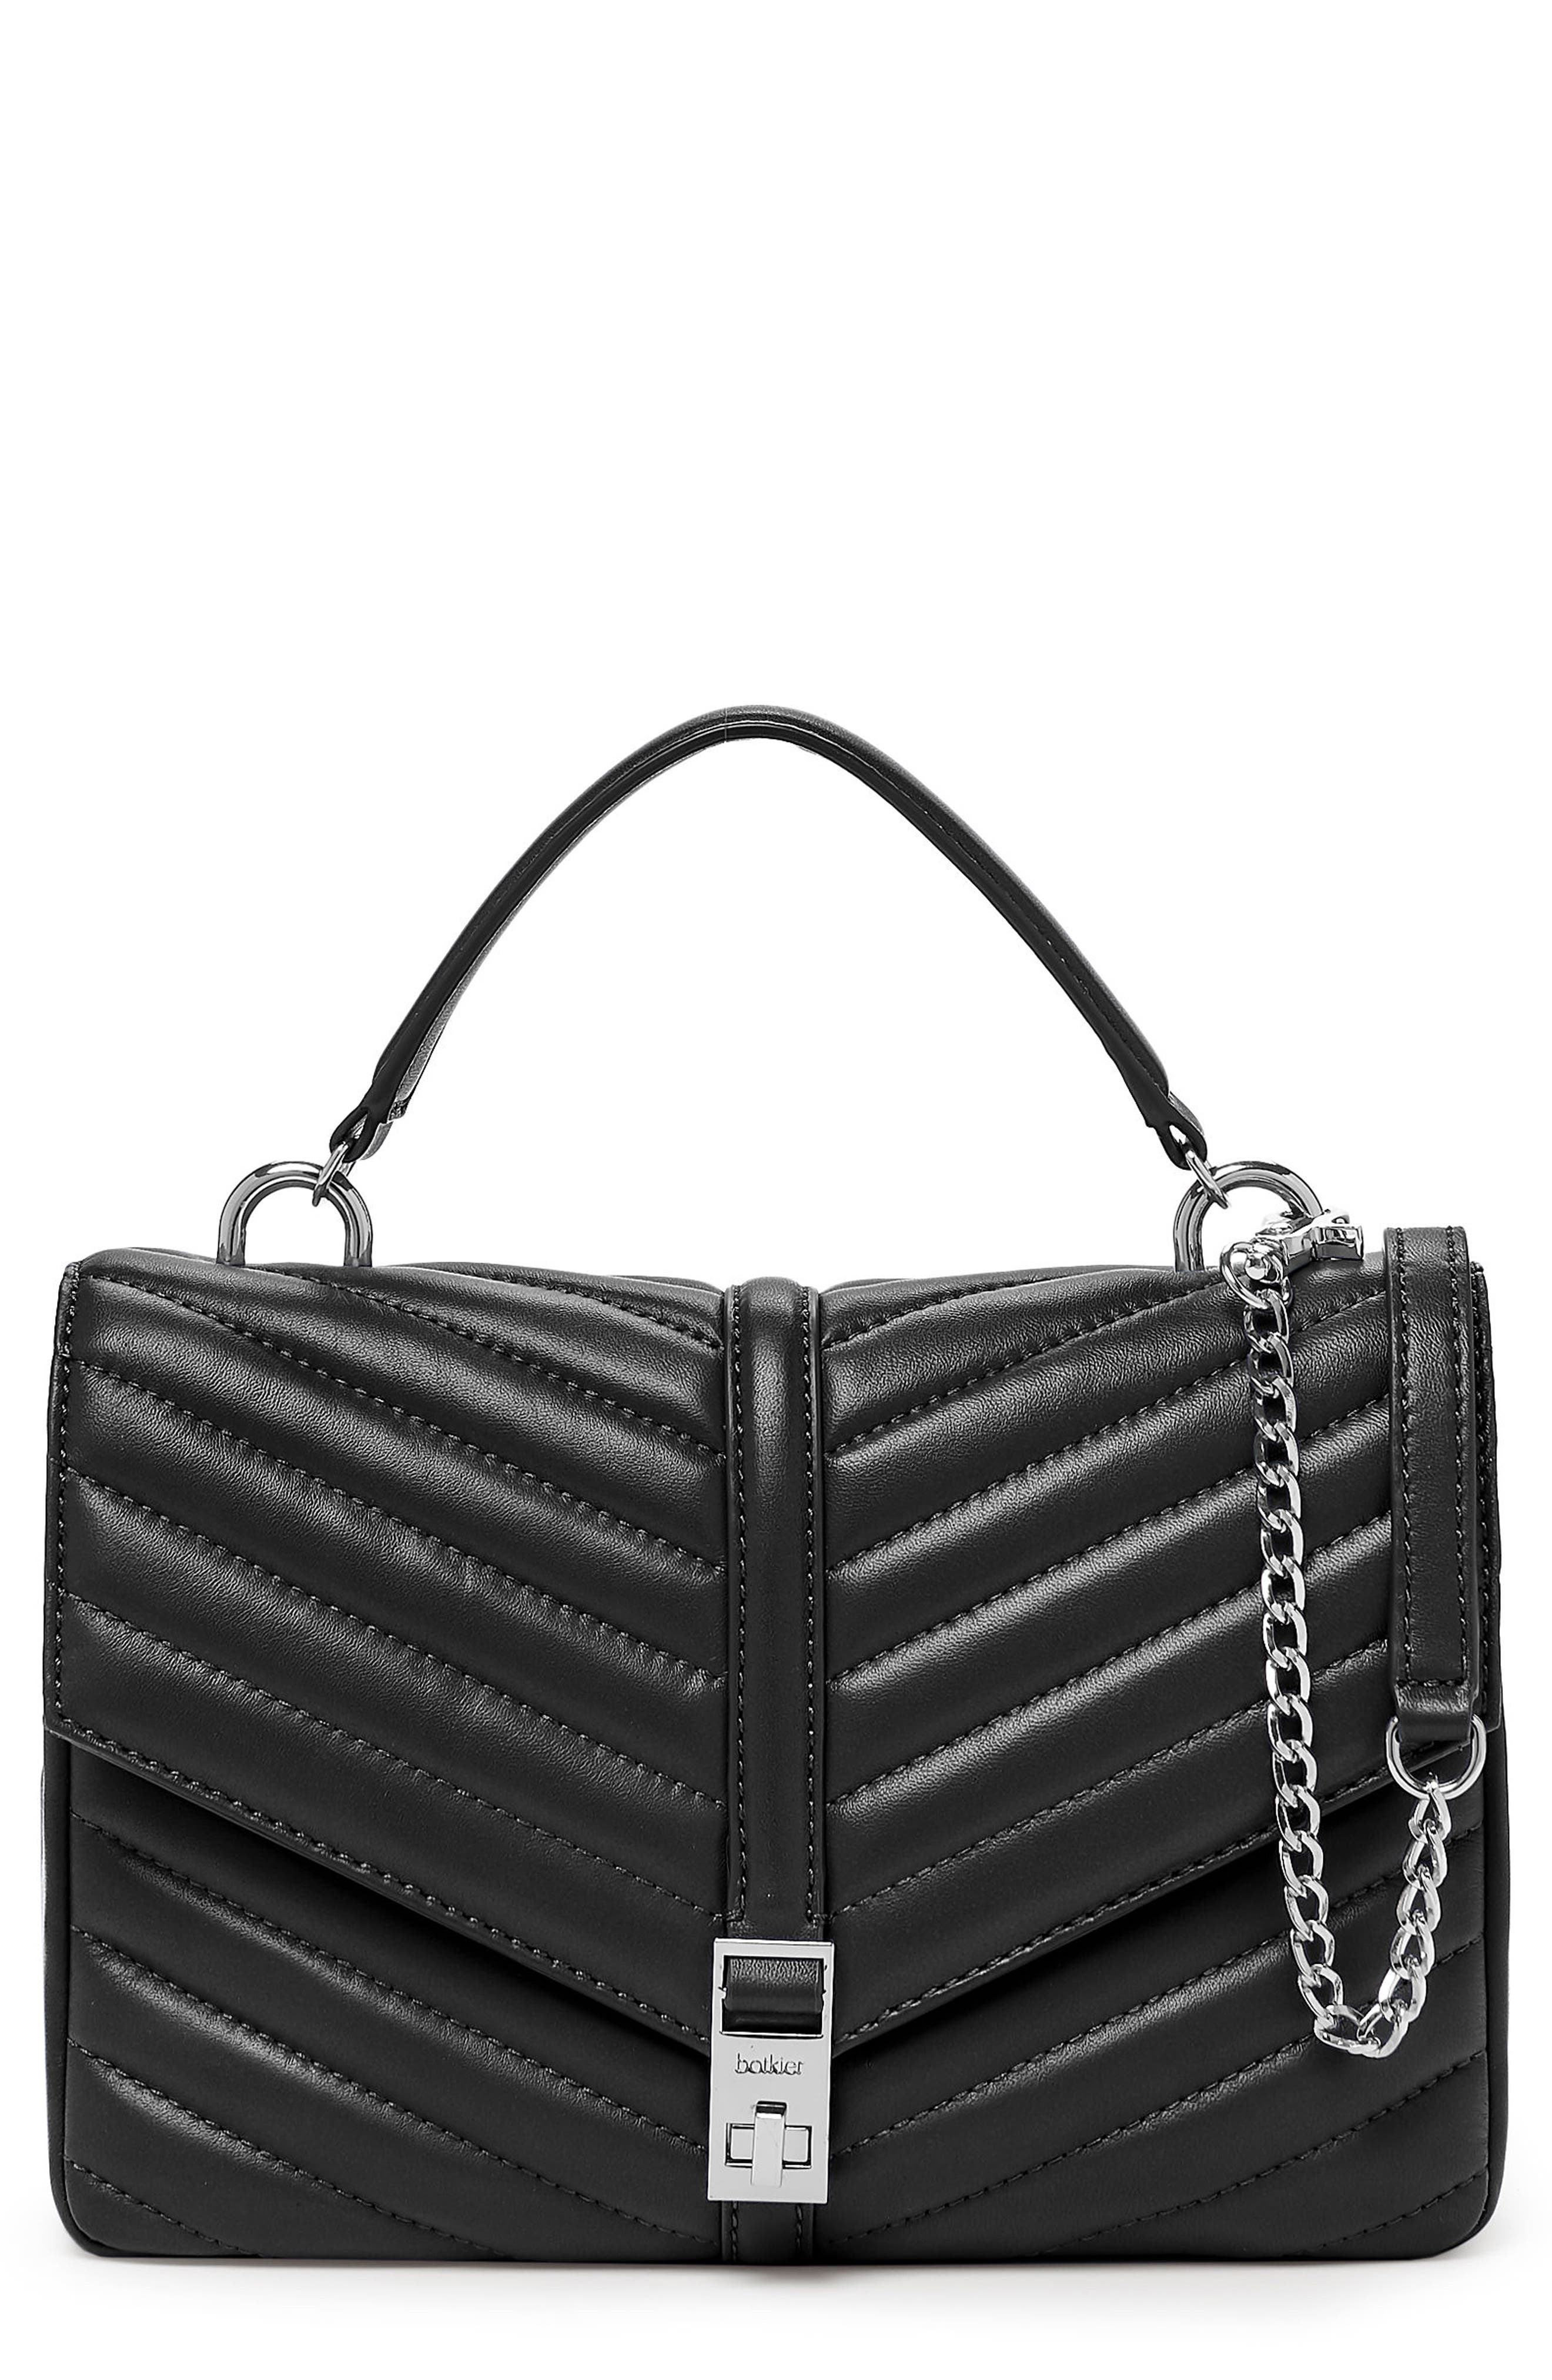 Dakota Quilted Leather Top Handle Bag,                             Main thumbnail 1, color,                             BLACK